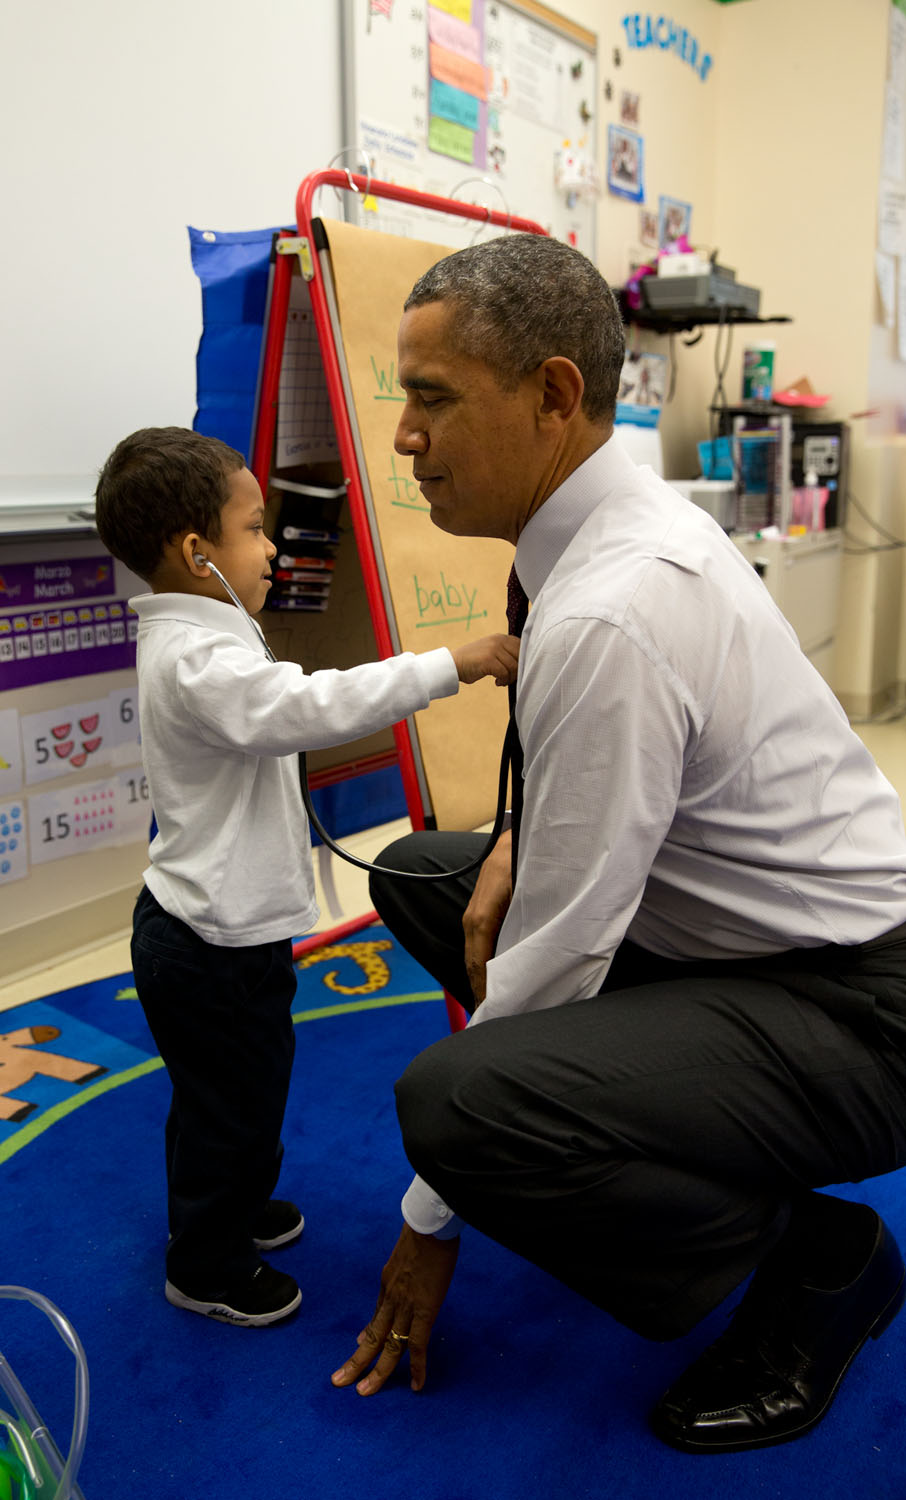 A young boy checks the President's heartbeat during a visit to a classroom at Powell Elementary School in Washington, D.C. Official White House photo by Pete Souza.